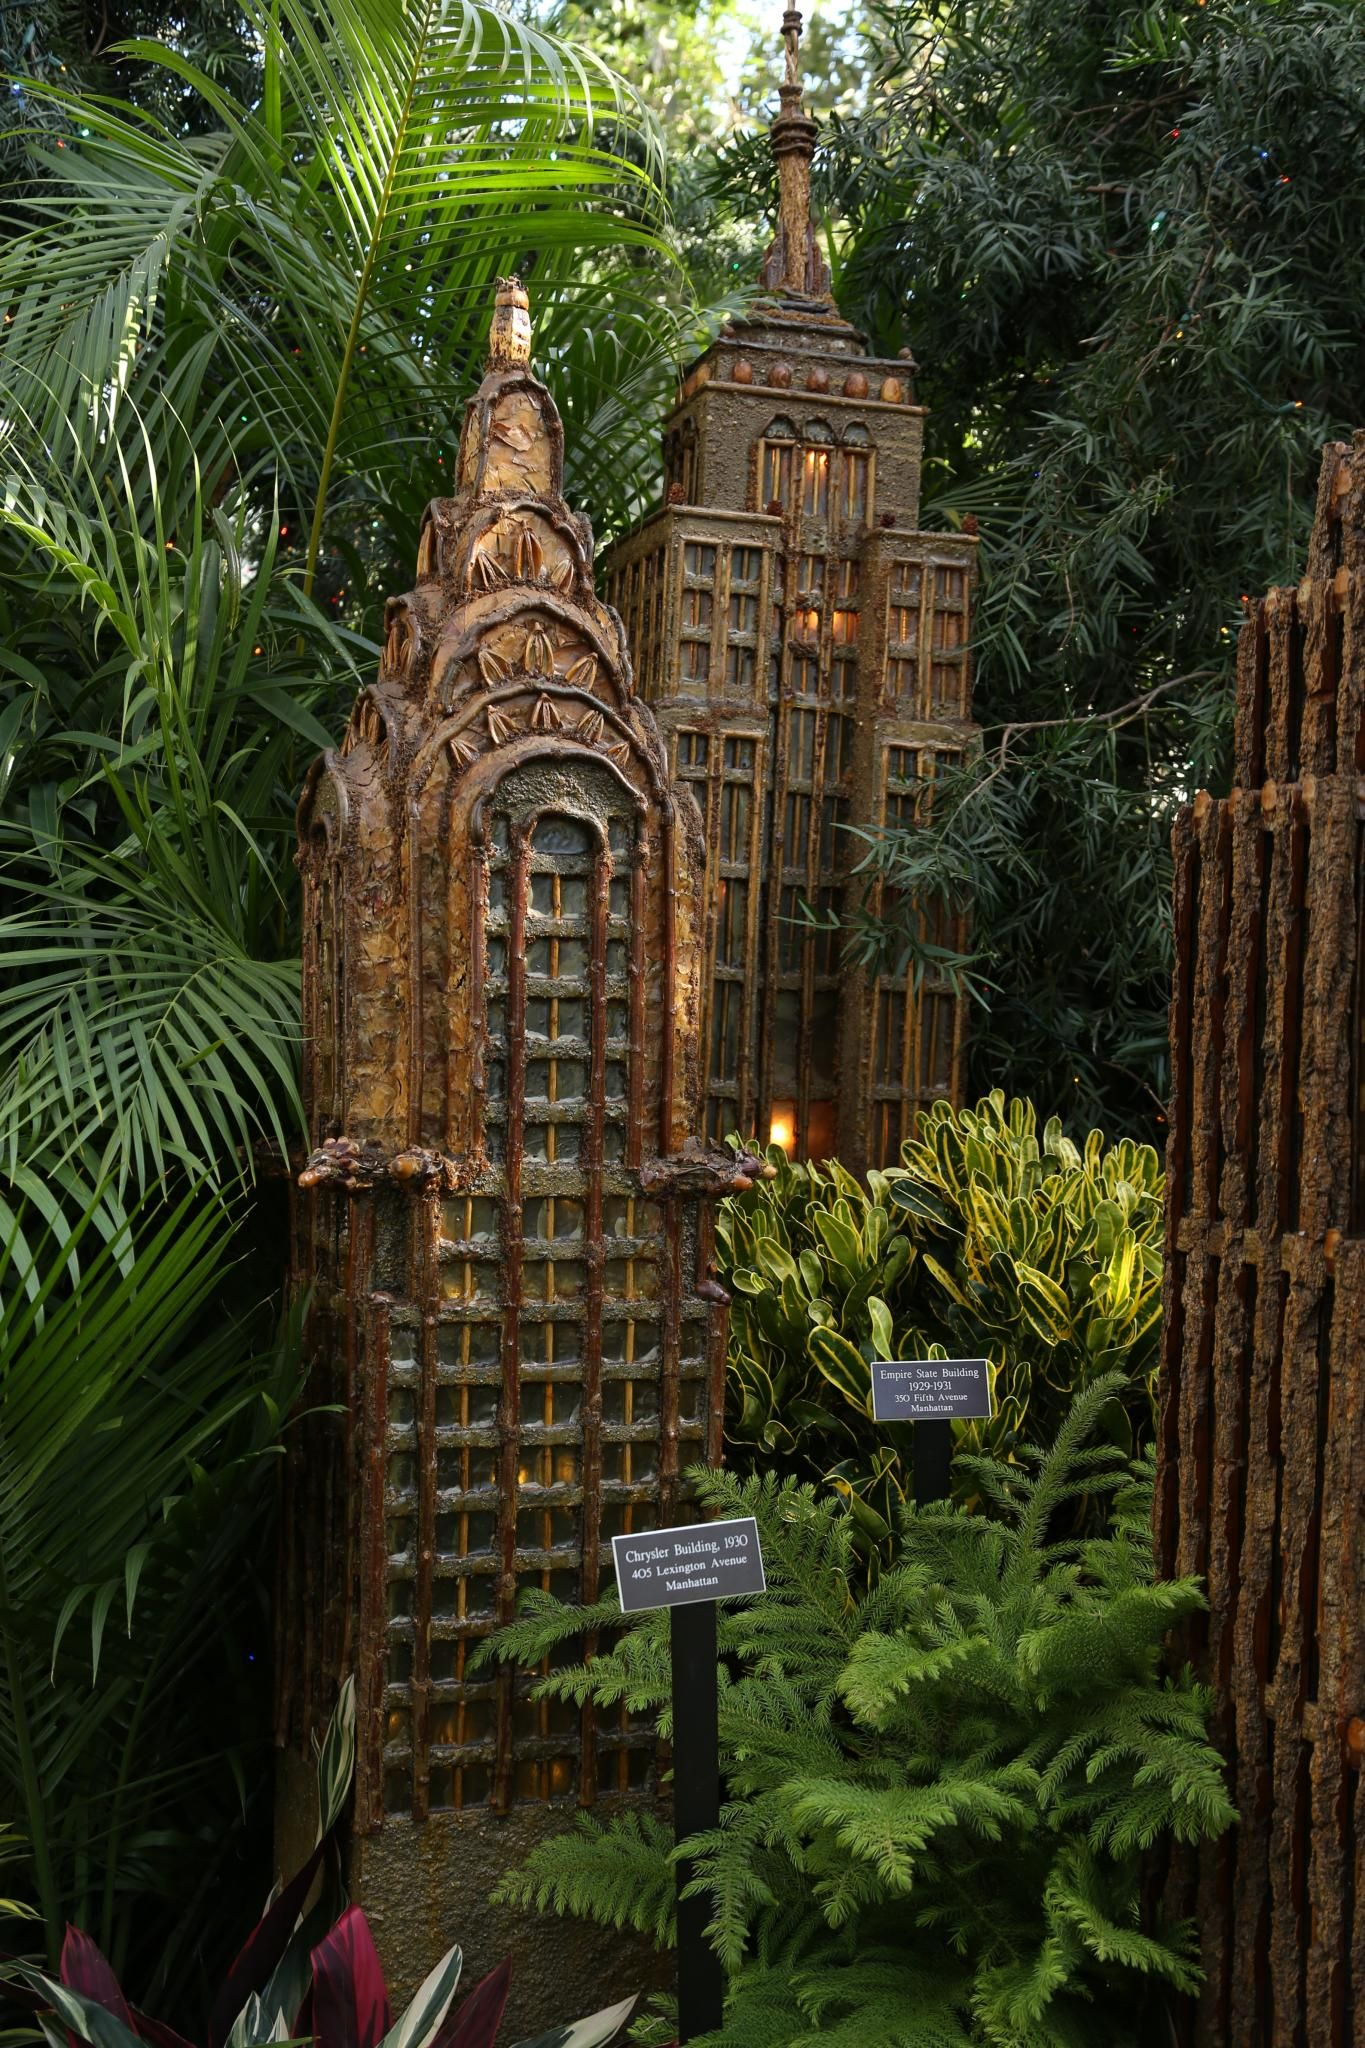 The Holiday Train Show at the New York Botanical Garden, Day 1 ...